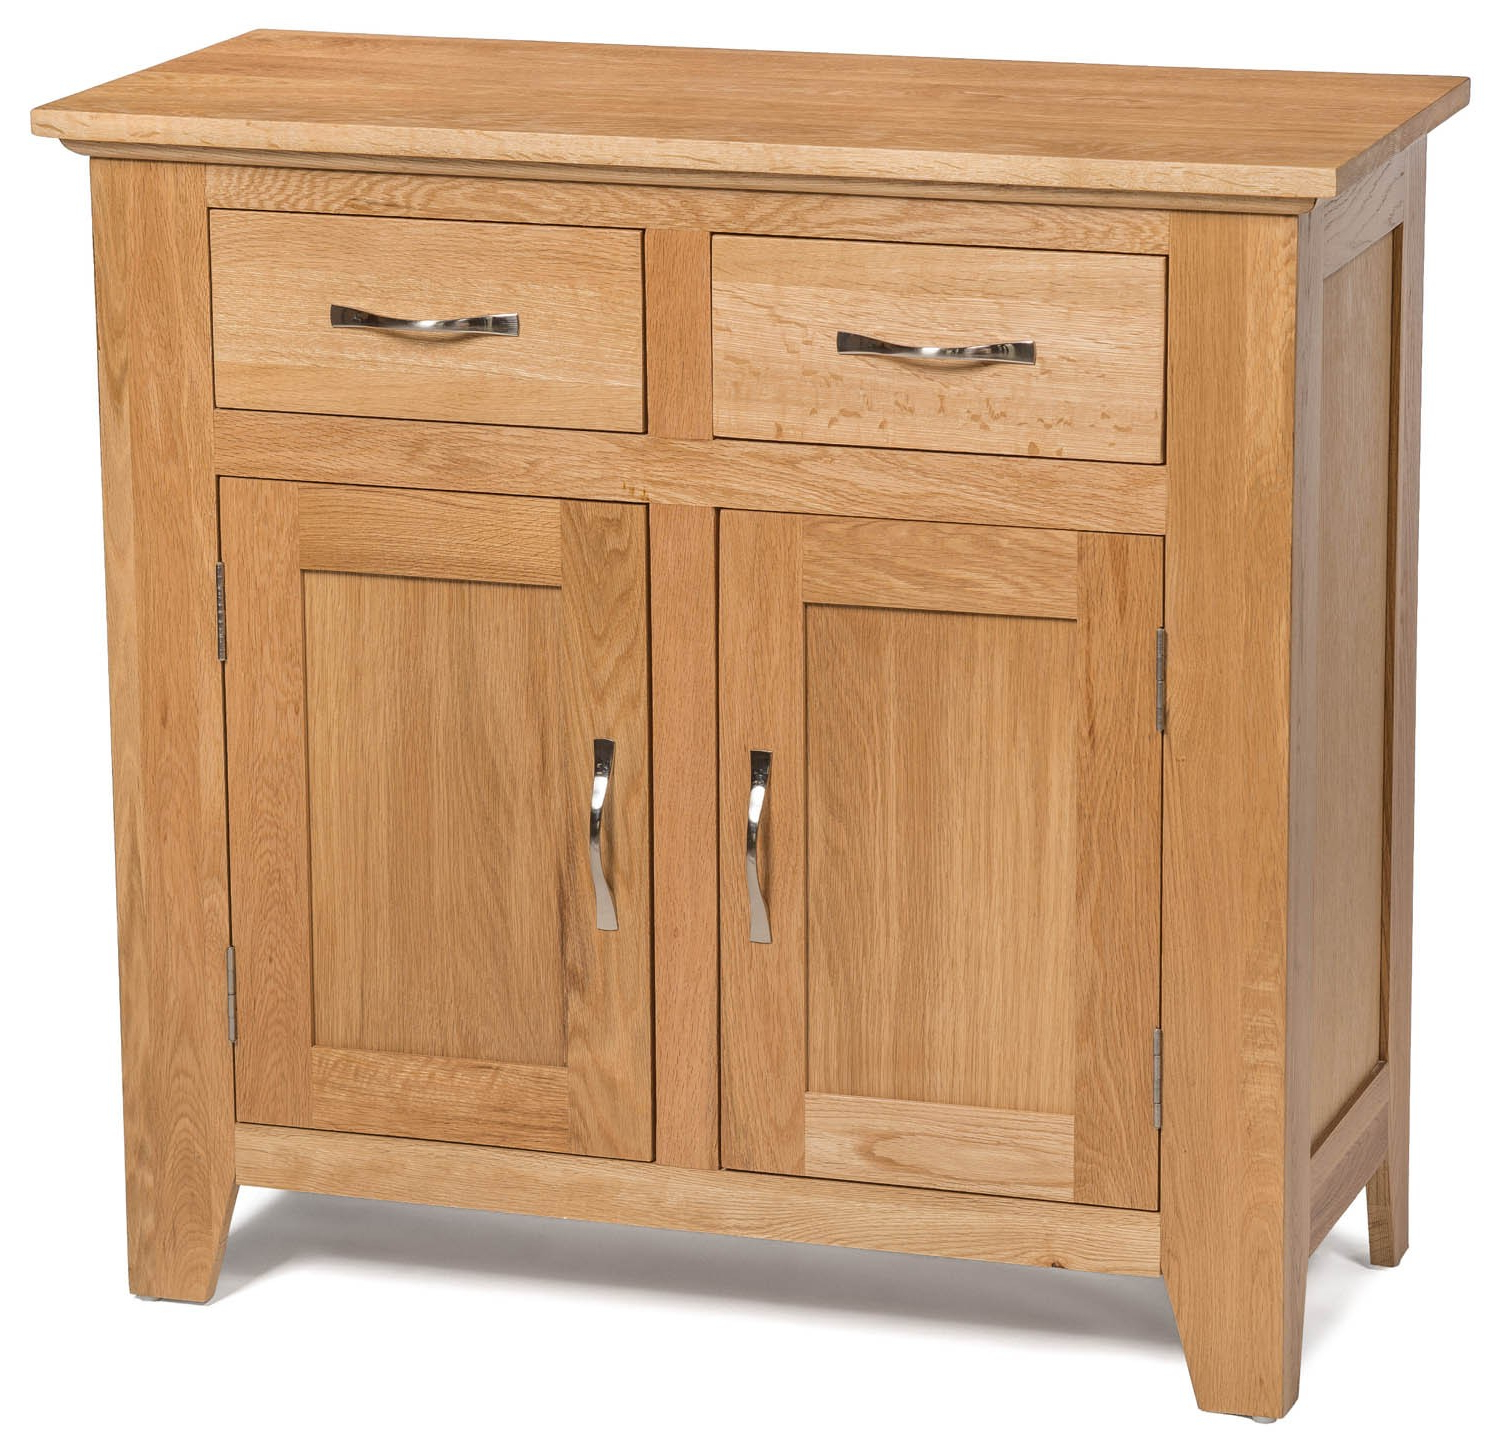 Camberley Oak Small 2 Door 2 Drawer Sideboard – Sideboards & Tops Throughout Preferred Walnut Finish 2 Door/3 Drawer Sideboards (Gallery 8 of 20)